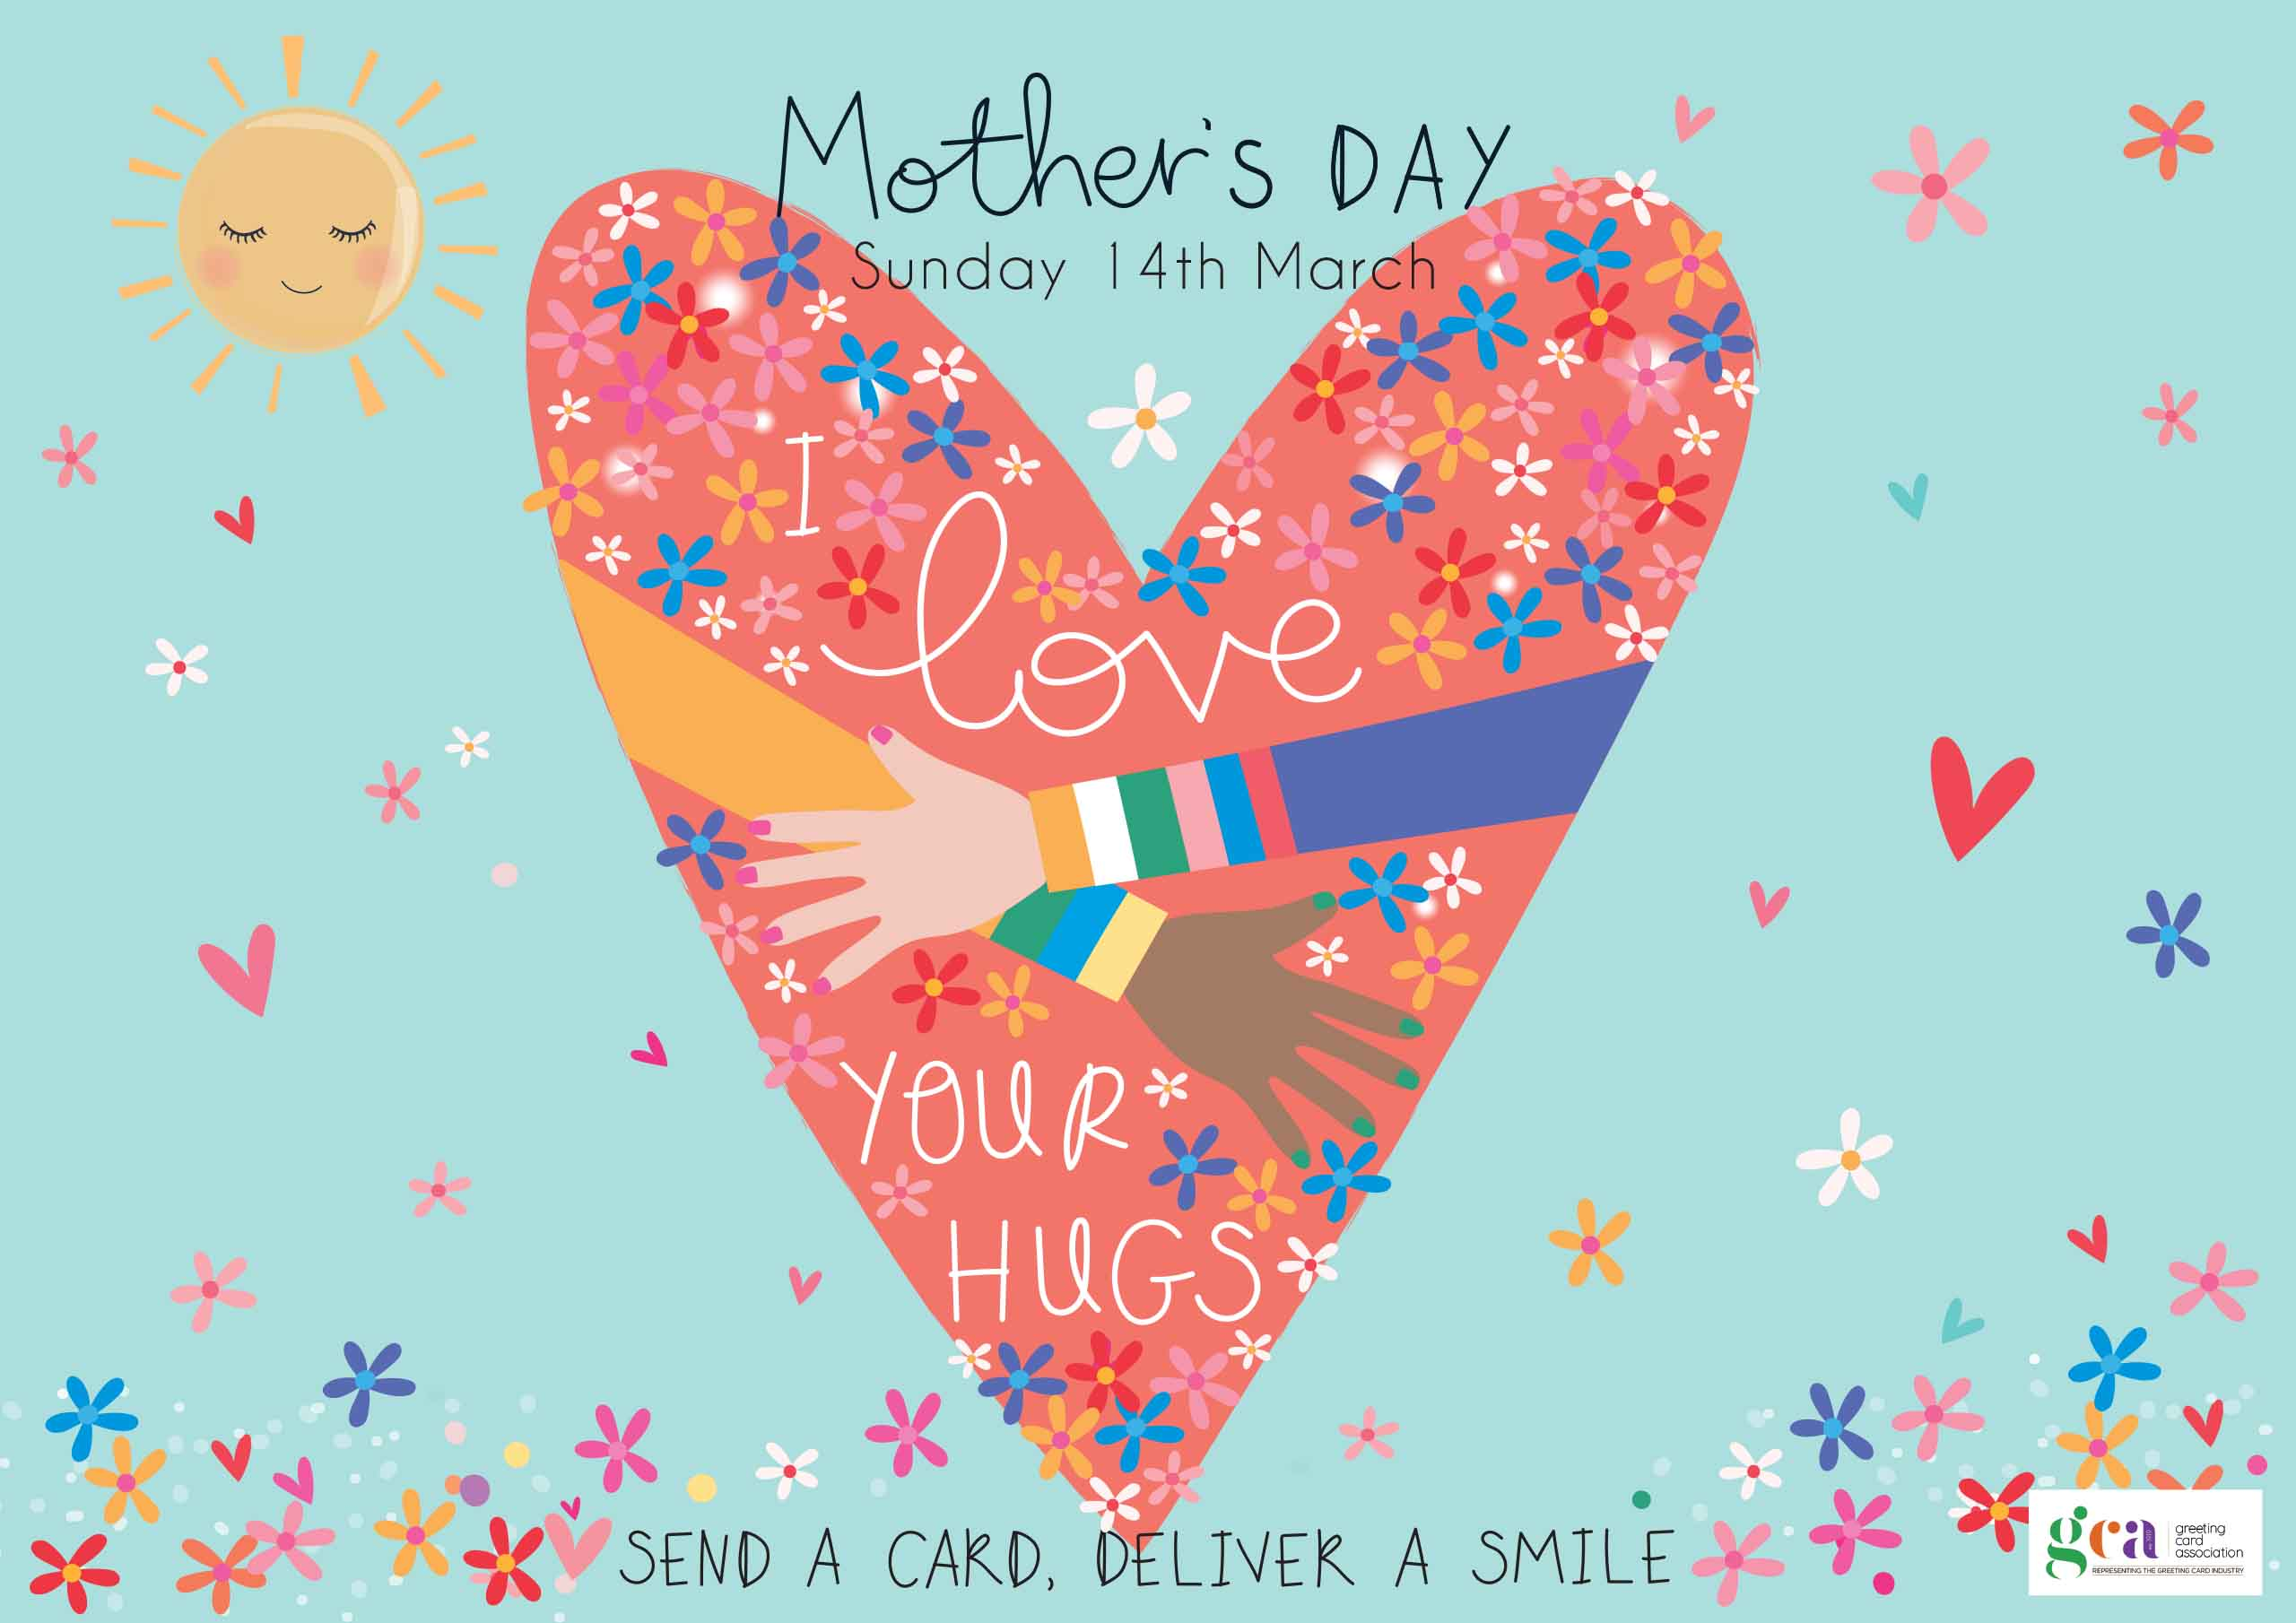 Above: Some of the Mother's Day PoS that was free to download from the GCA website (designed by Belly Button Designs).